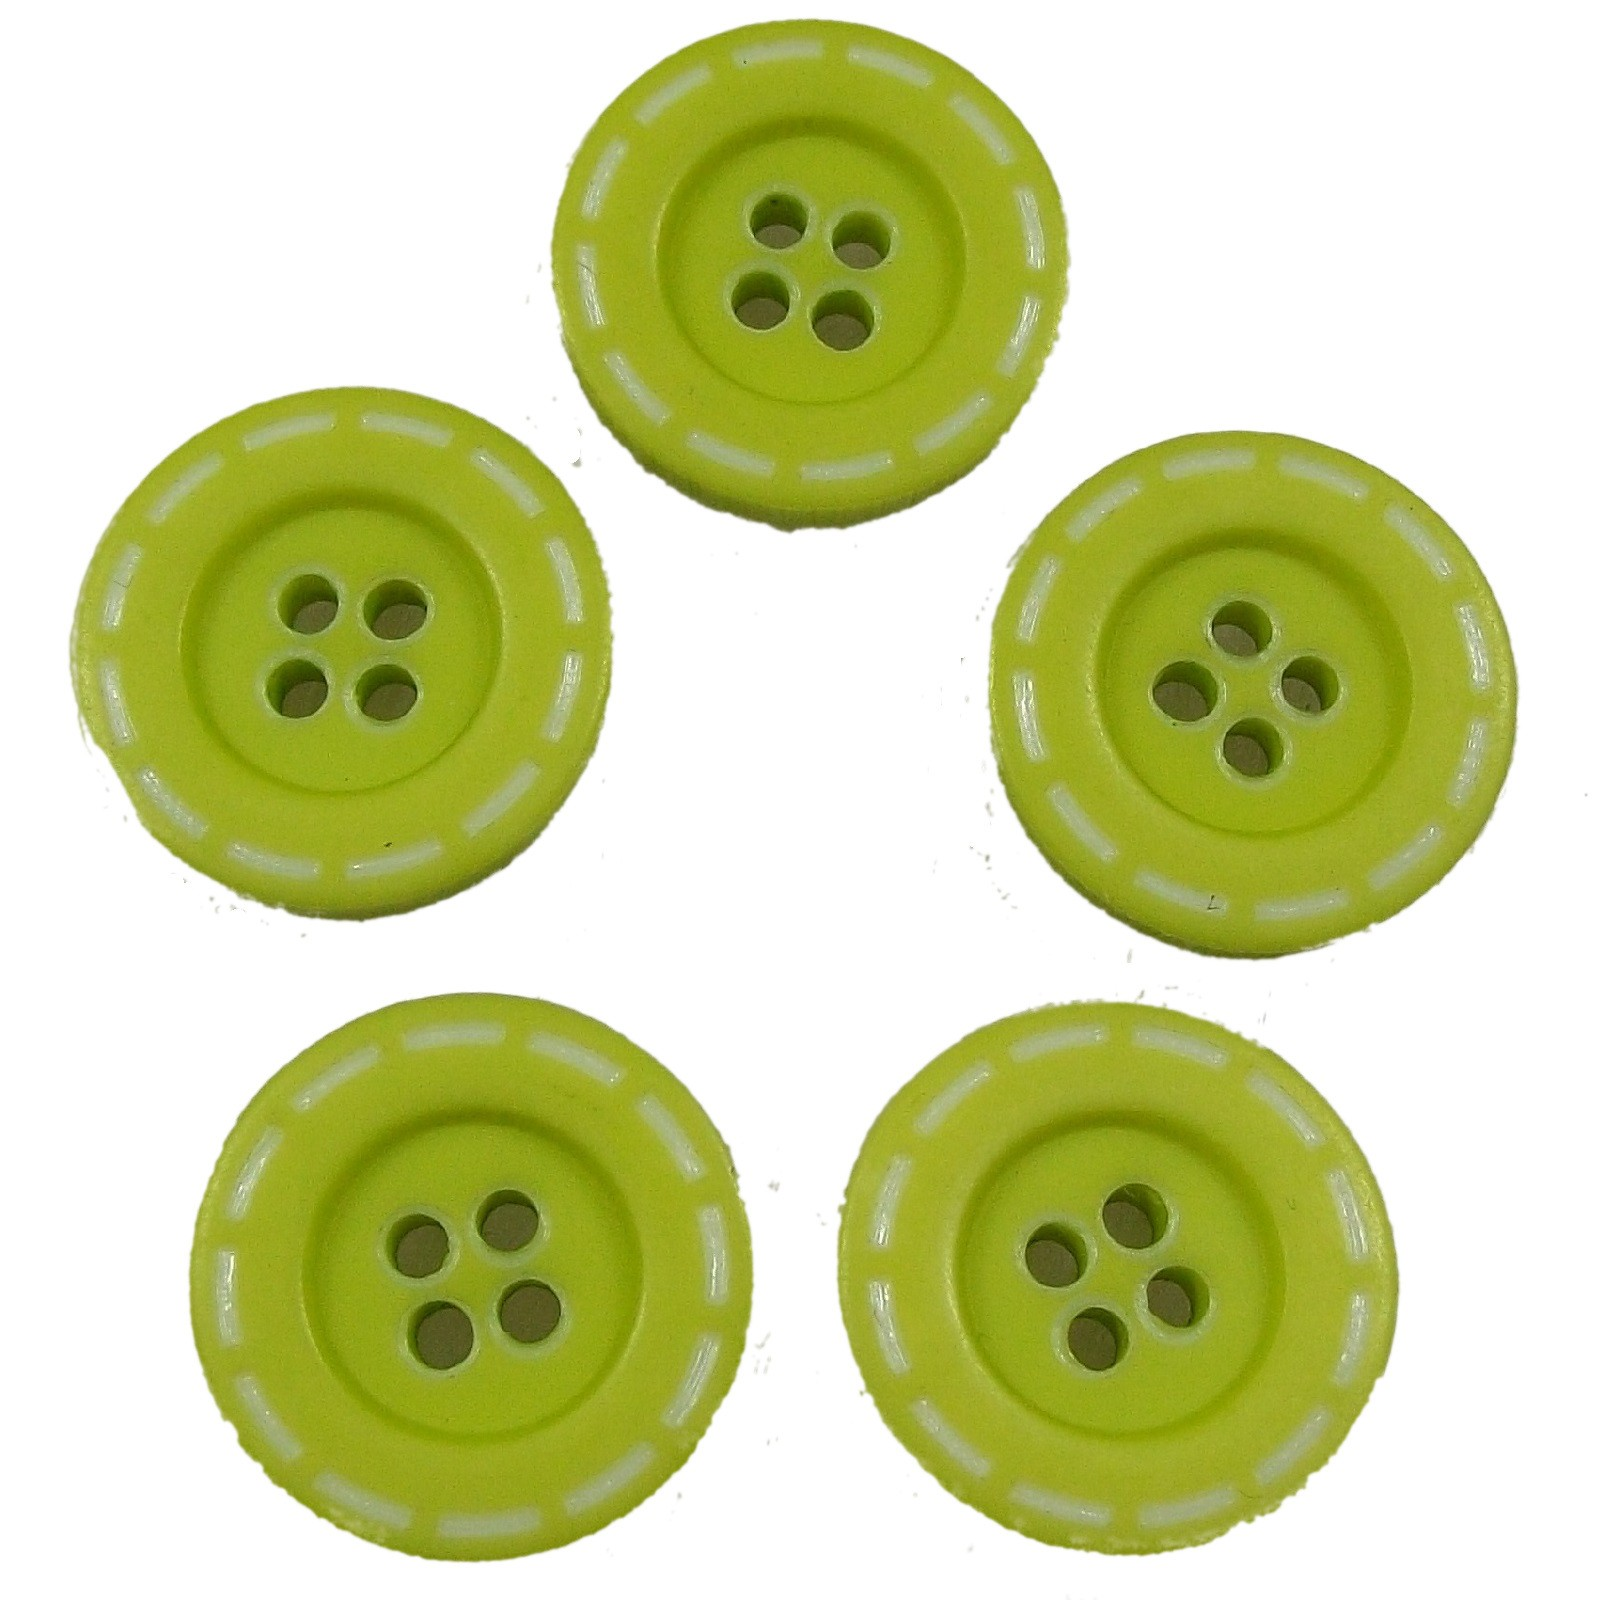 Stitched Edge Effect 4 Hole Buttons 17mm Light Green Pack of 5